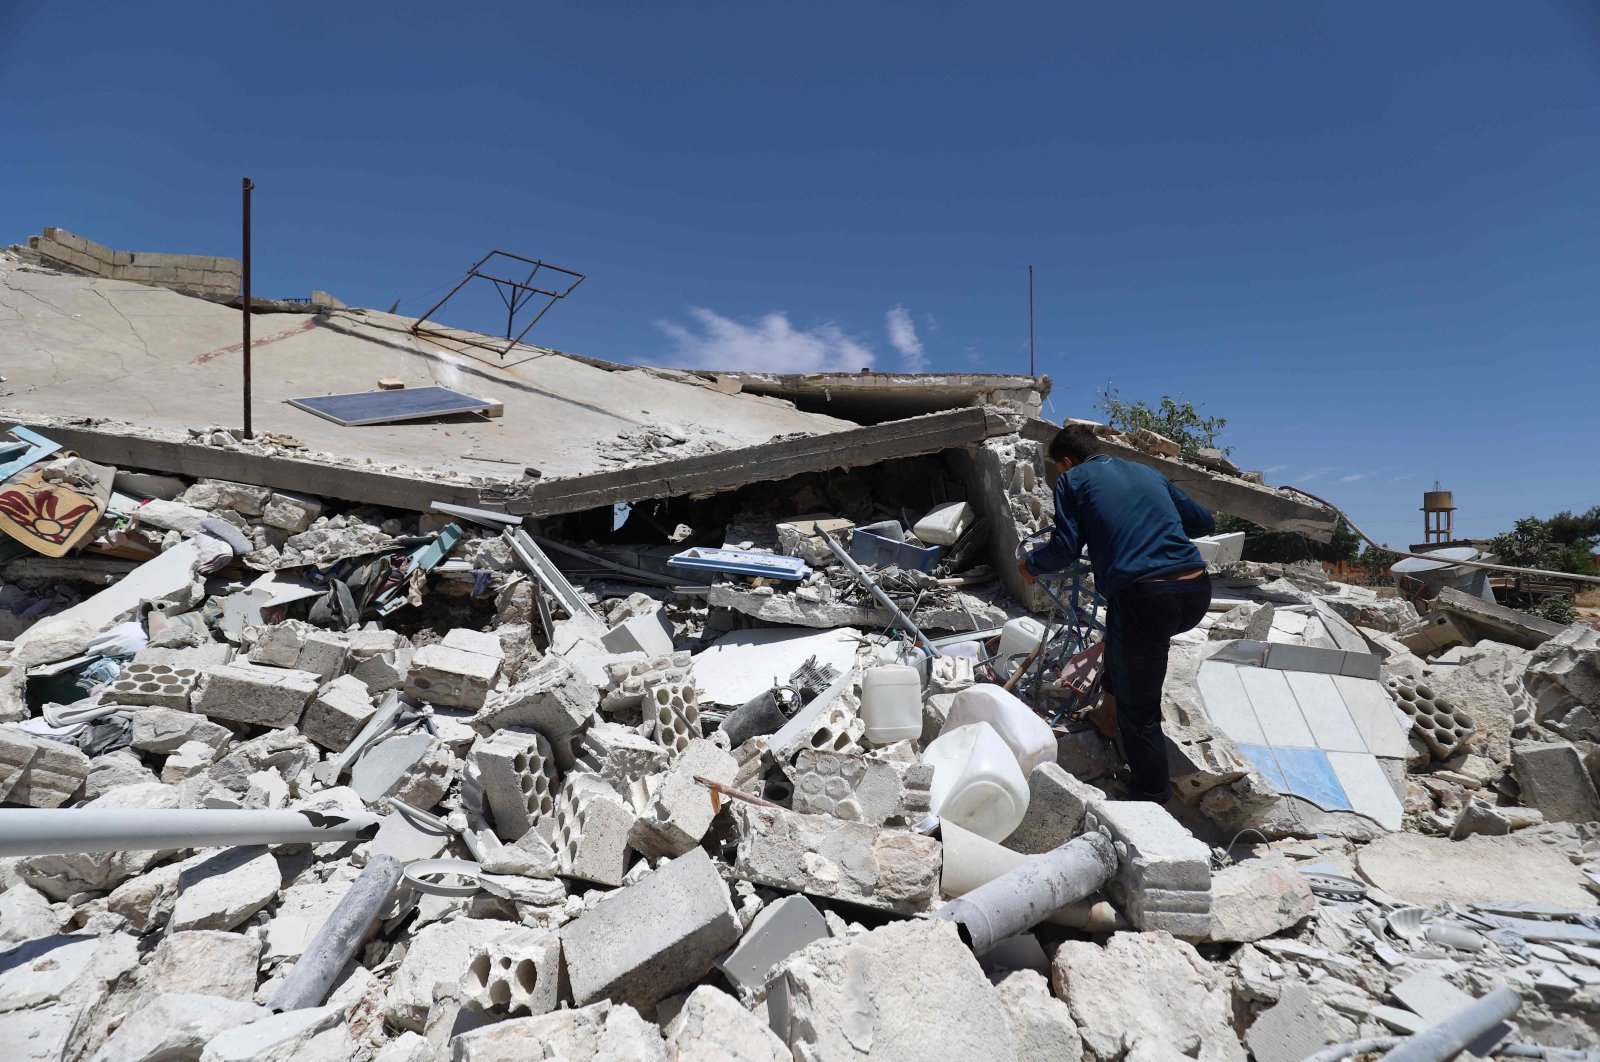 A man looks through the rubble of a destroyed house in the village of Iblin in the Jabal al-Zawiya region in Syria's opposition-held northwestern Idlib province, June 10, 2021. (AFP Photo)